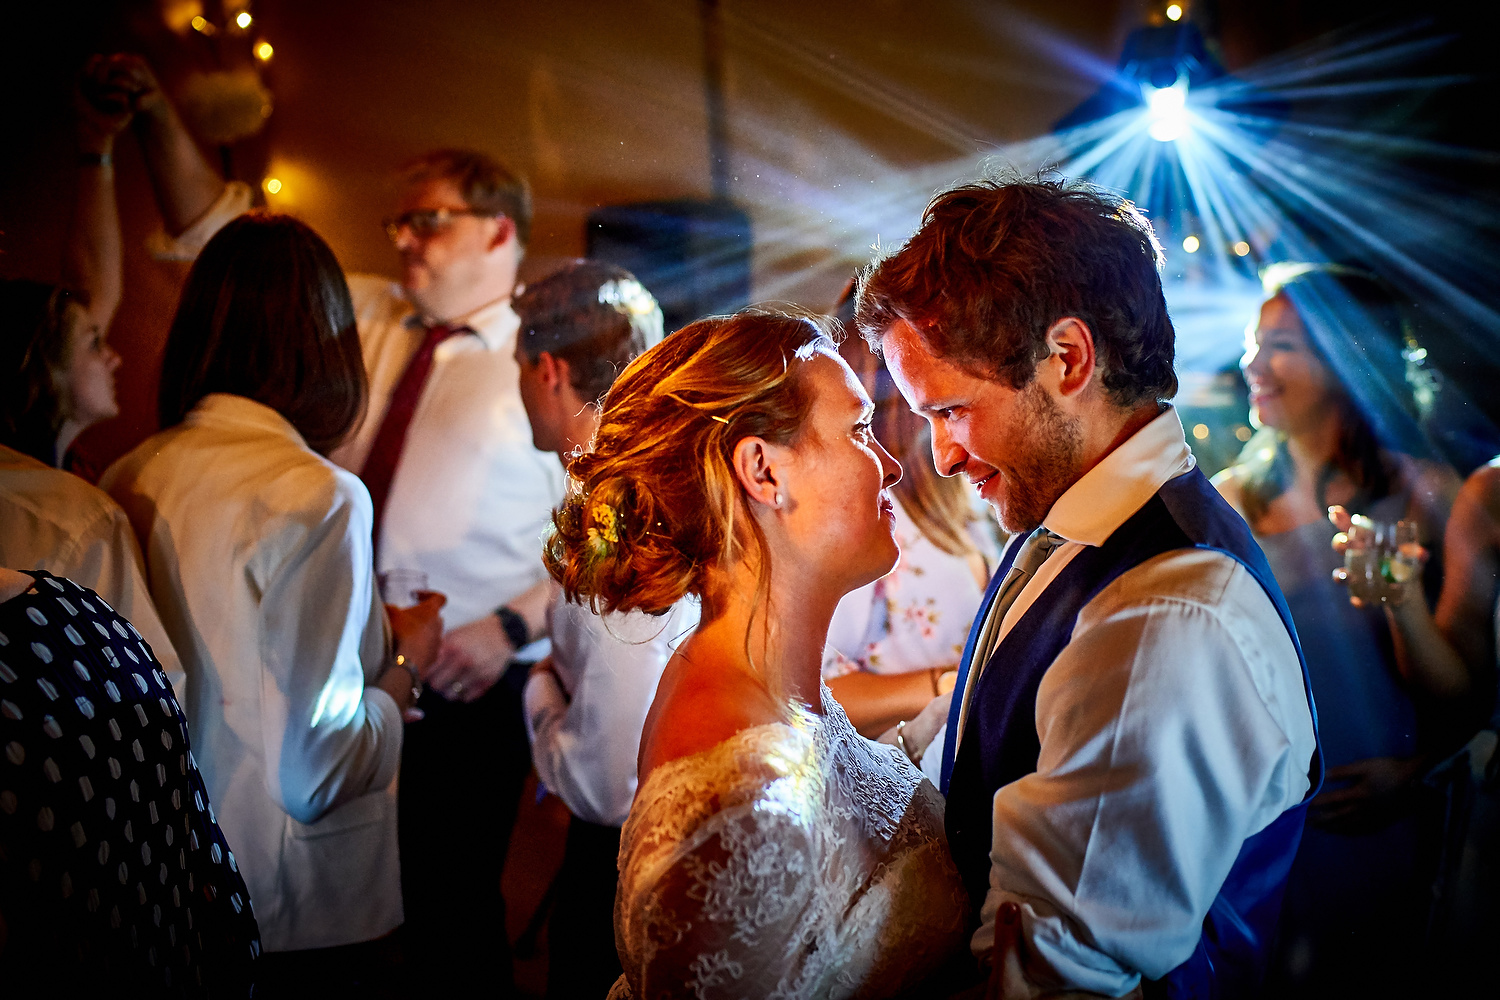 Bride and groom reflect on the dance floor at Sussex village wedding